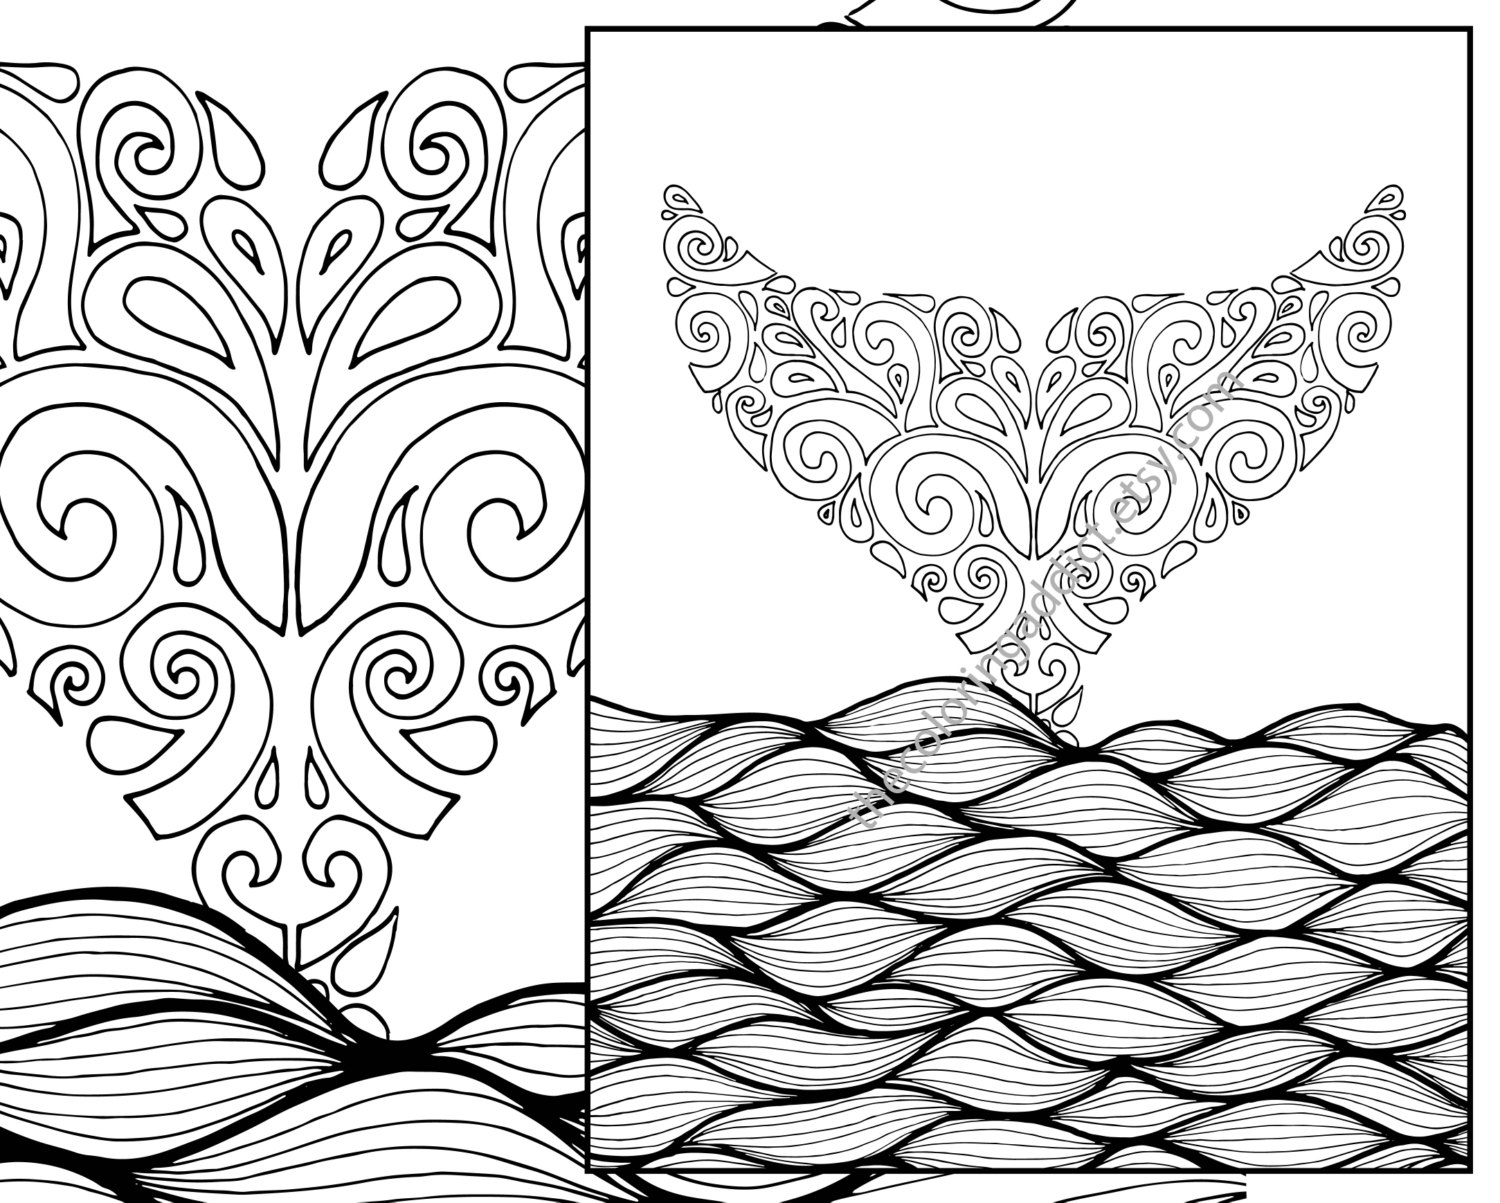 hard beach coloring pages kids summer coloring printables flowers amusement parks beach coloring pages hard